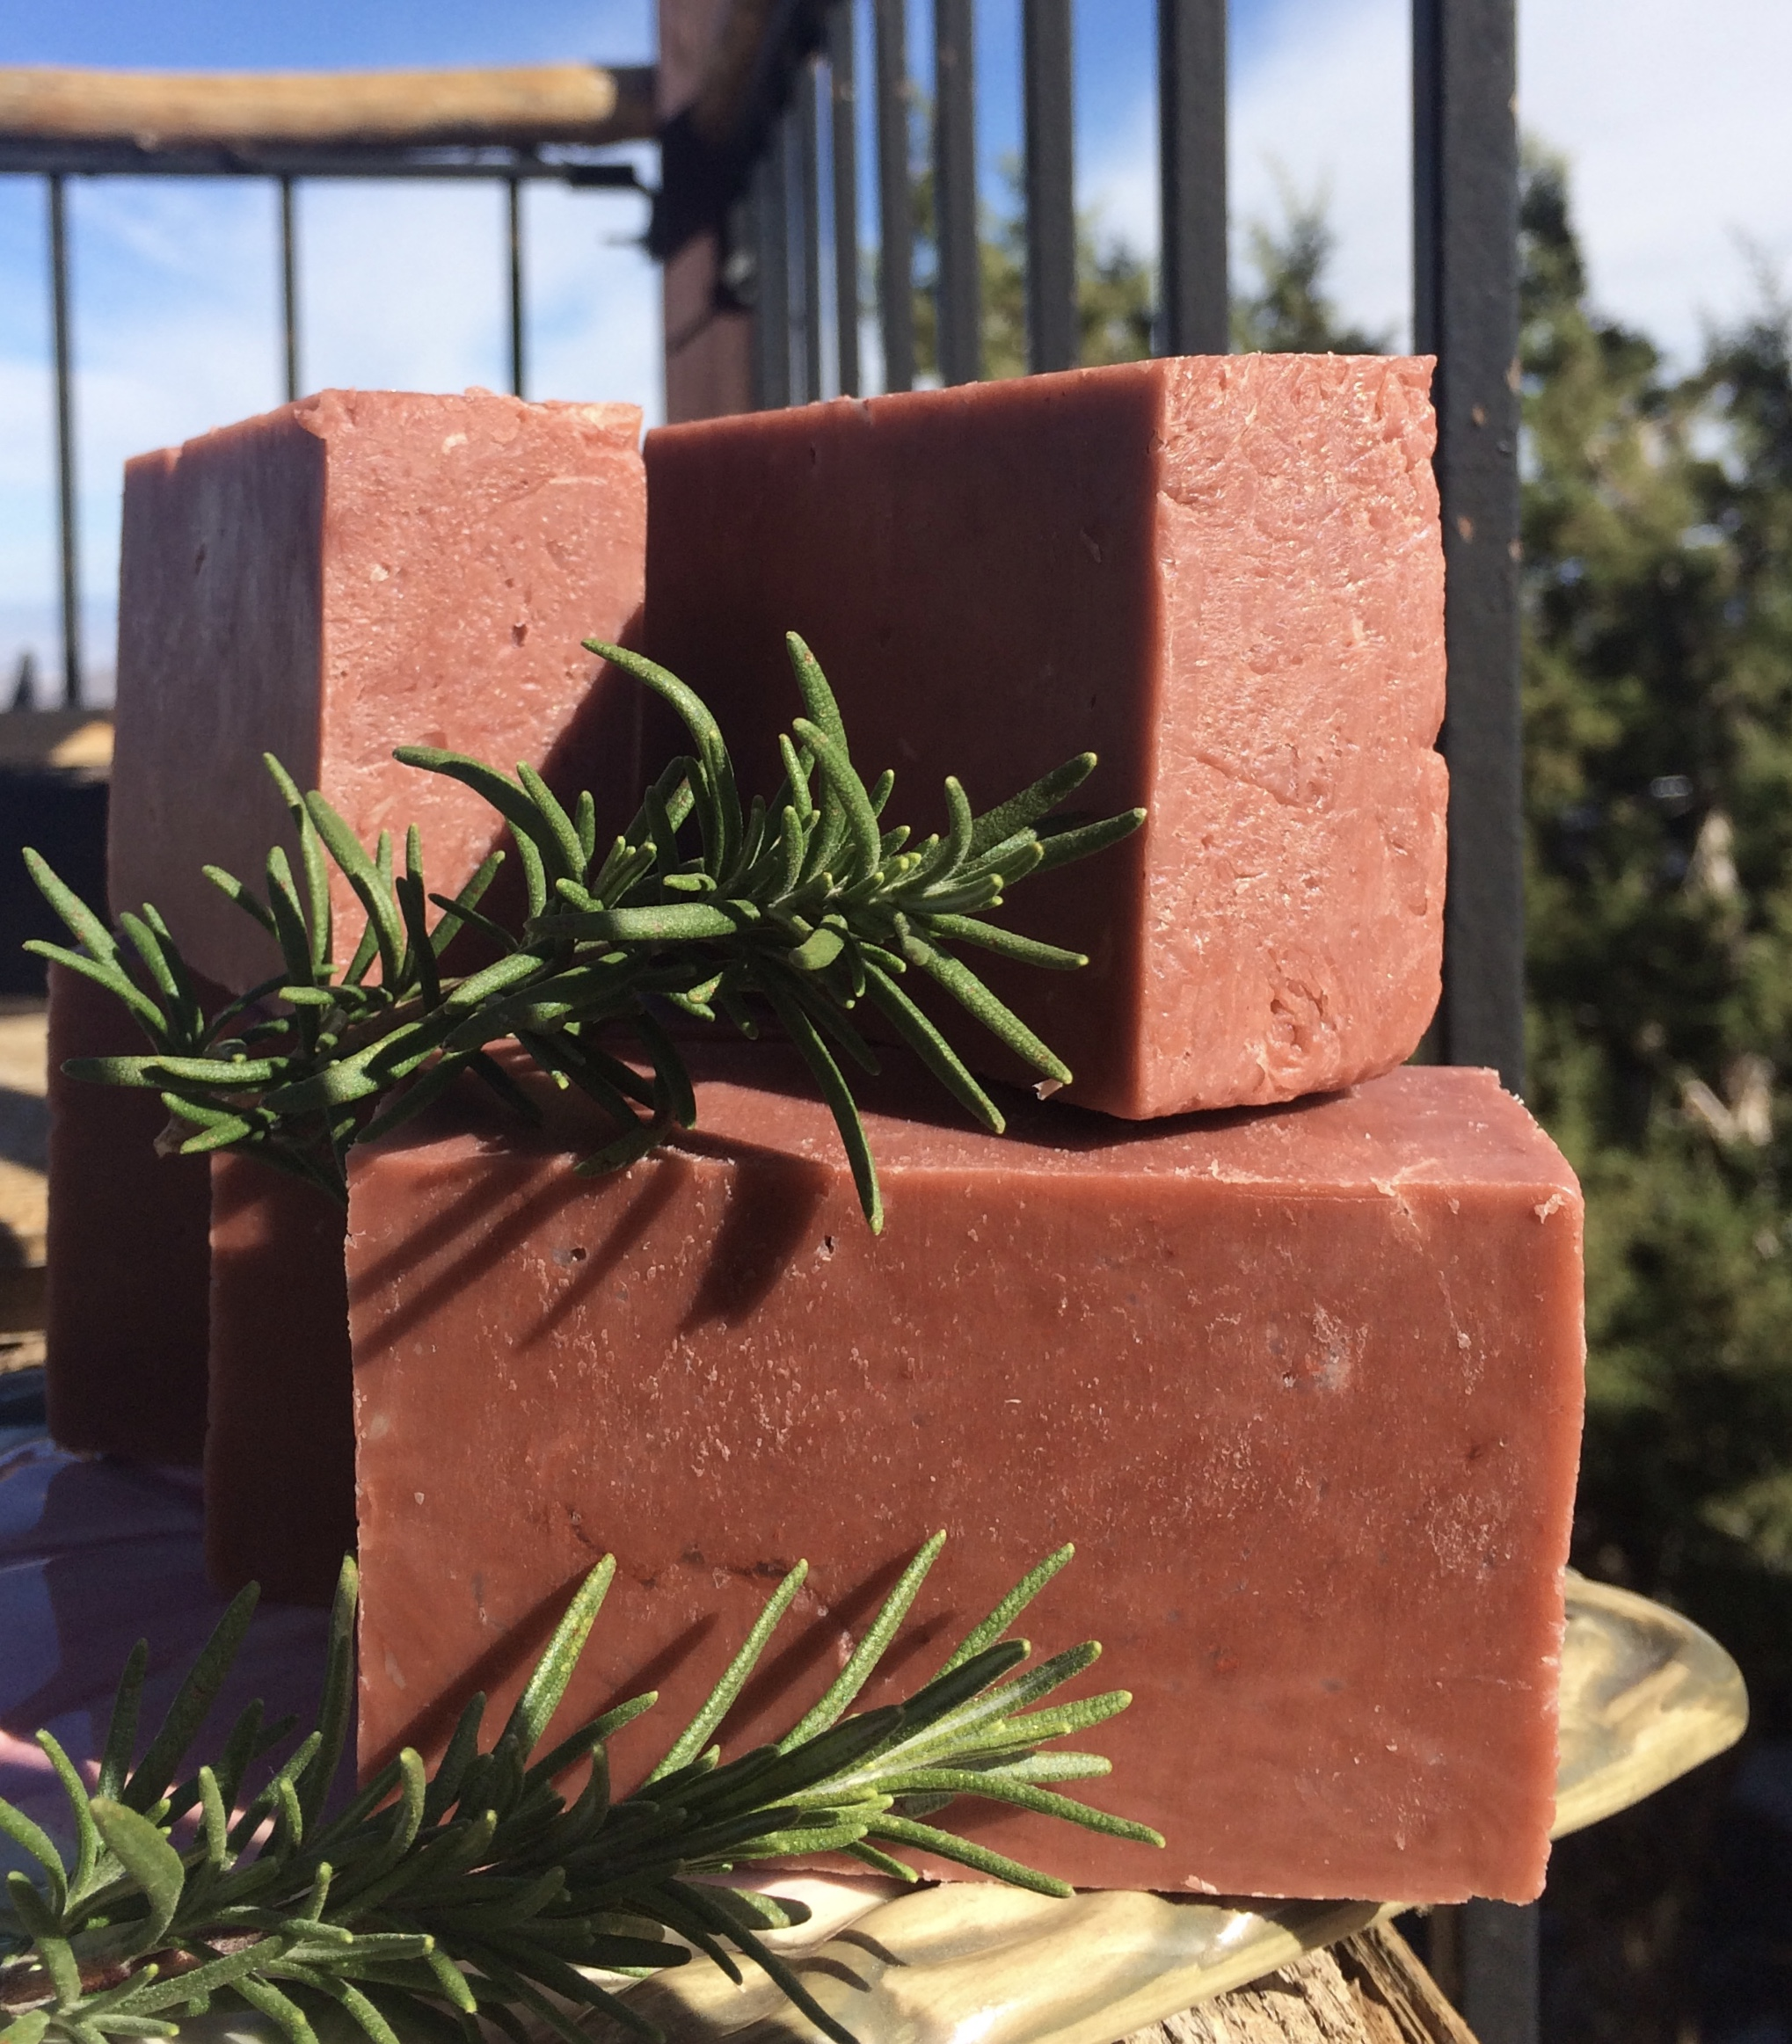 This soap variation is colored with Moroccan Red Clay and scented with Lavender and Rosemary.